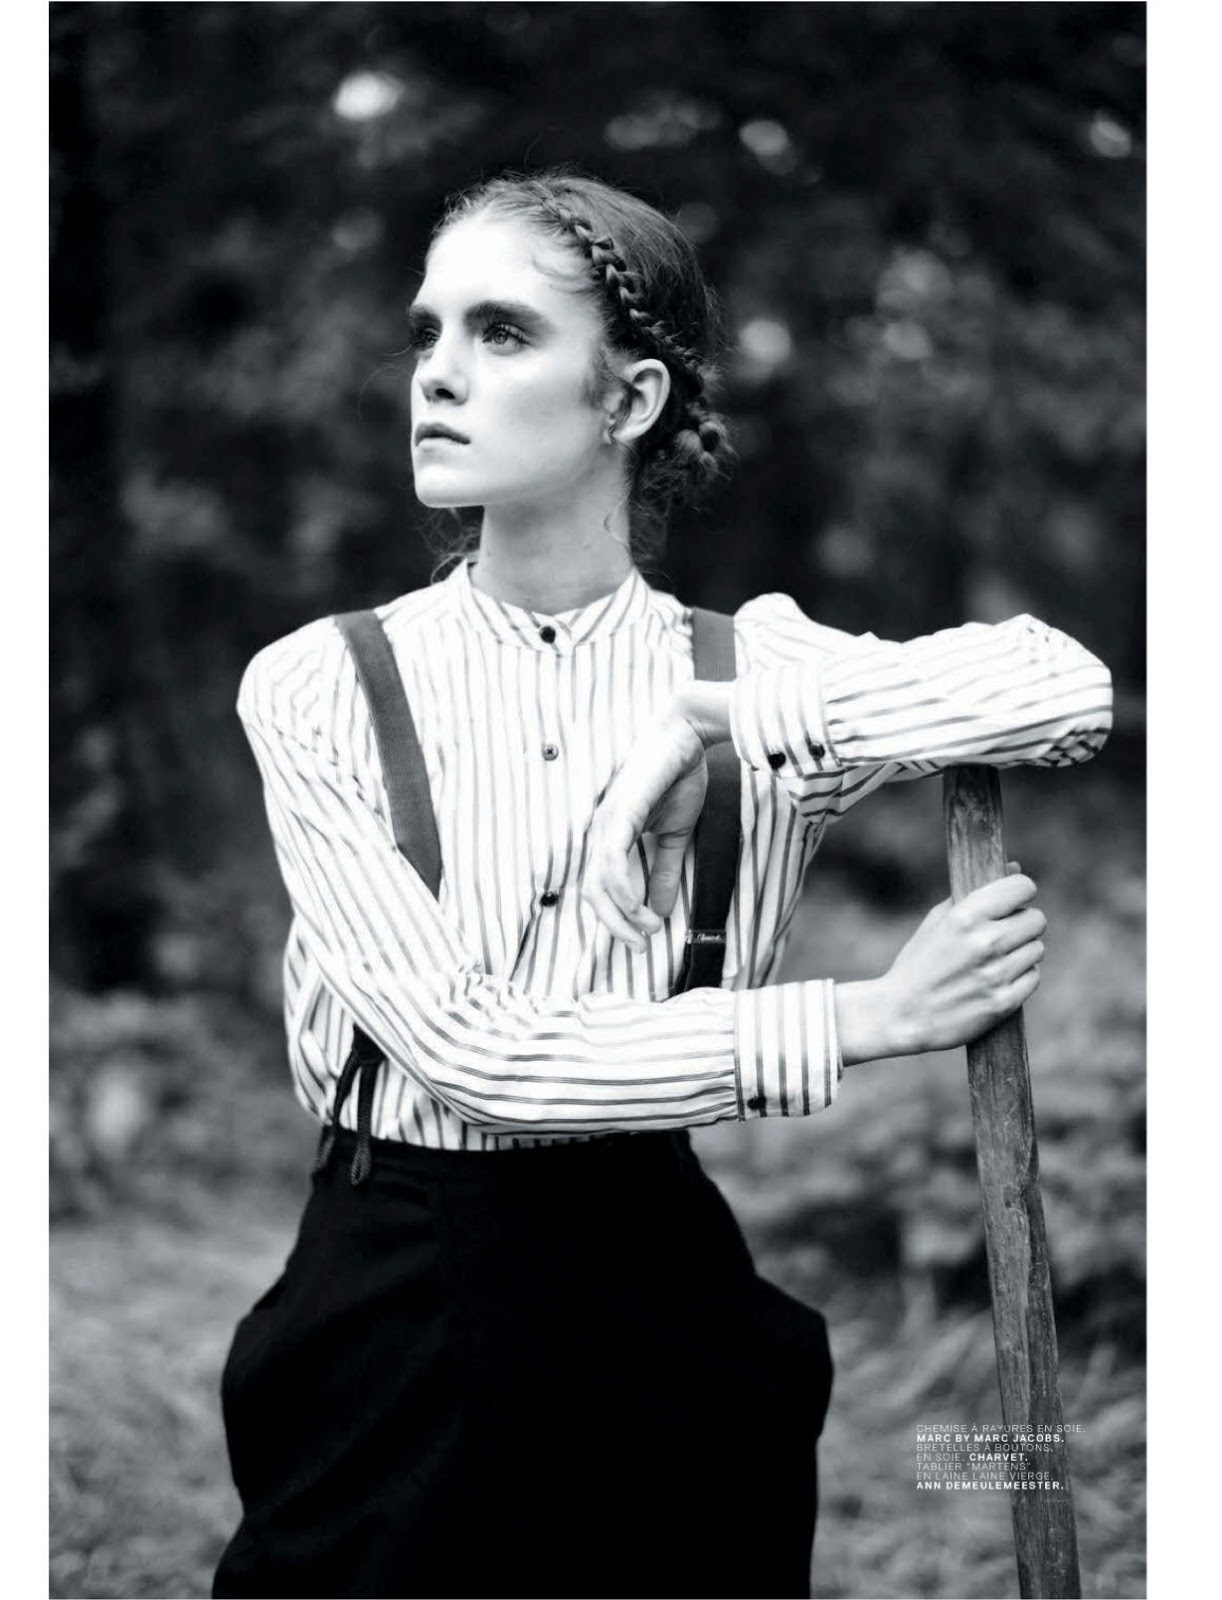 Jalouse Magazine shot by Mathieu Cesar styled by Simon Pylyser and me